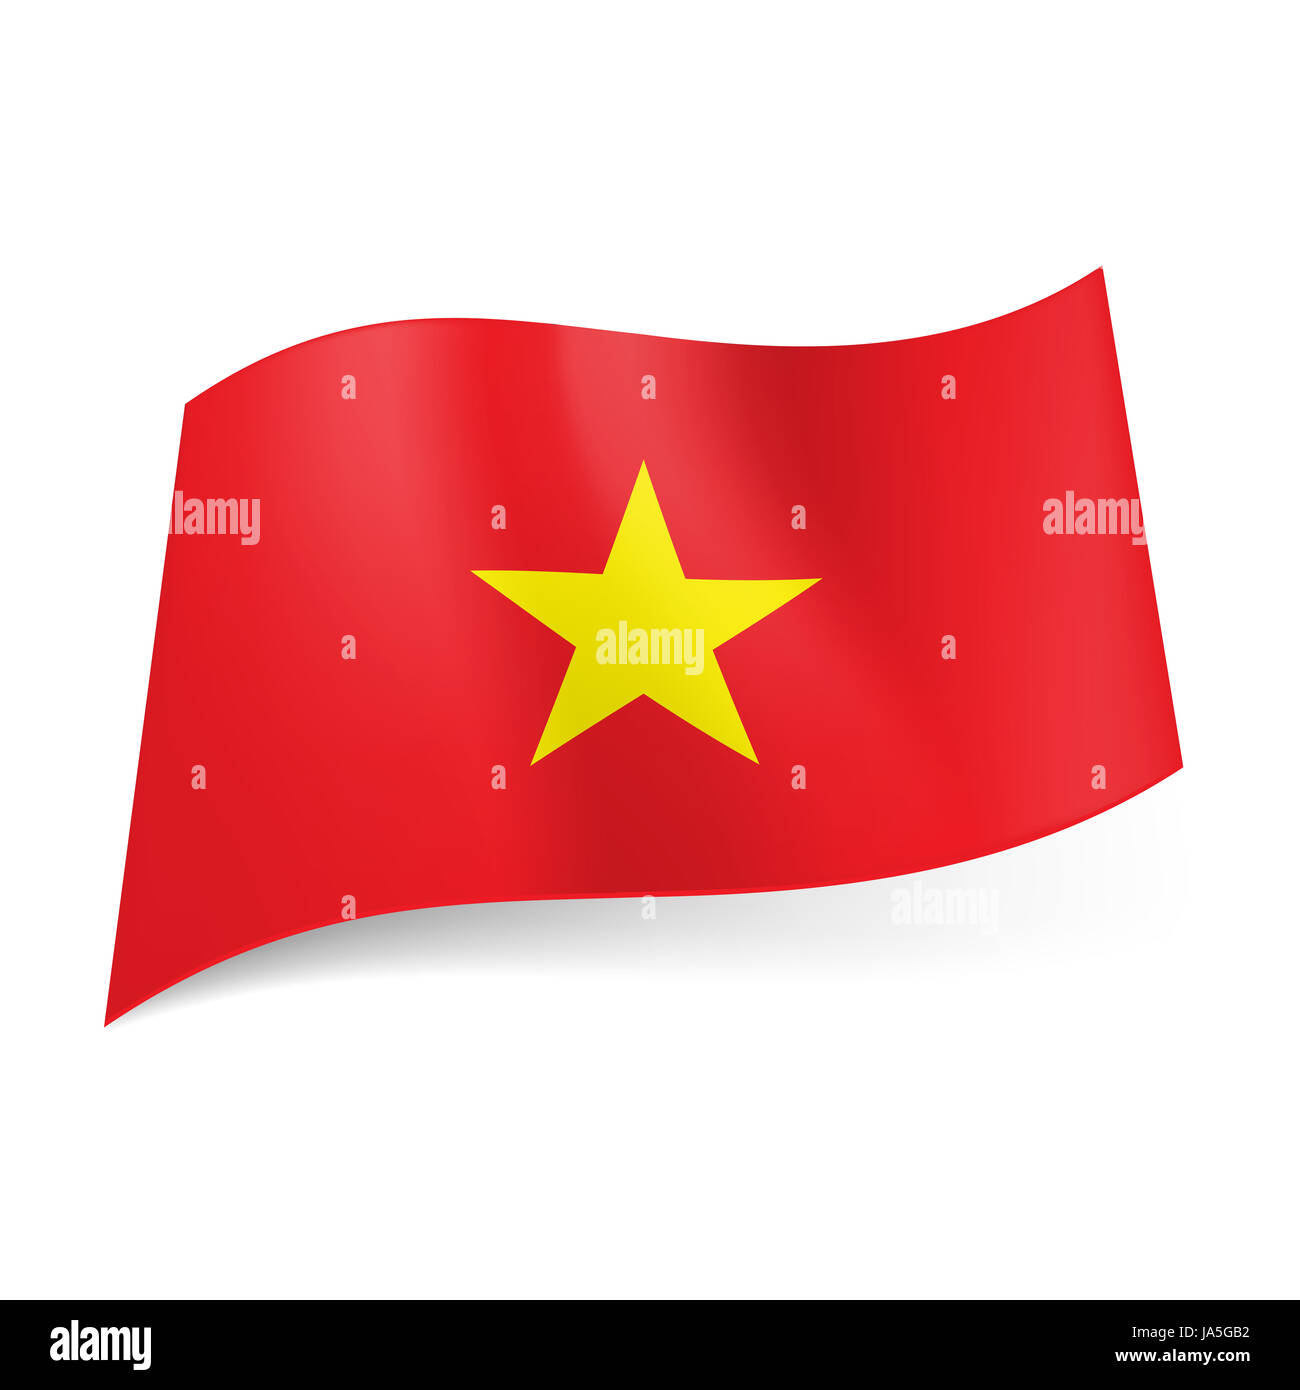 national flag of vietnam: red background with yellow star in centre